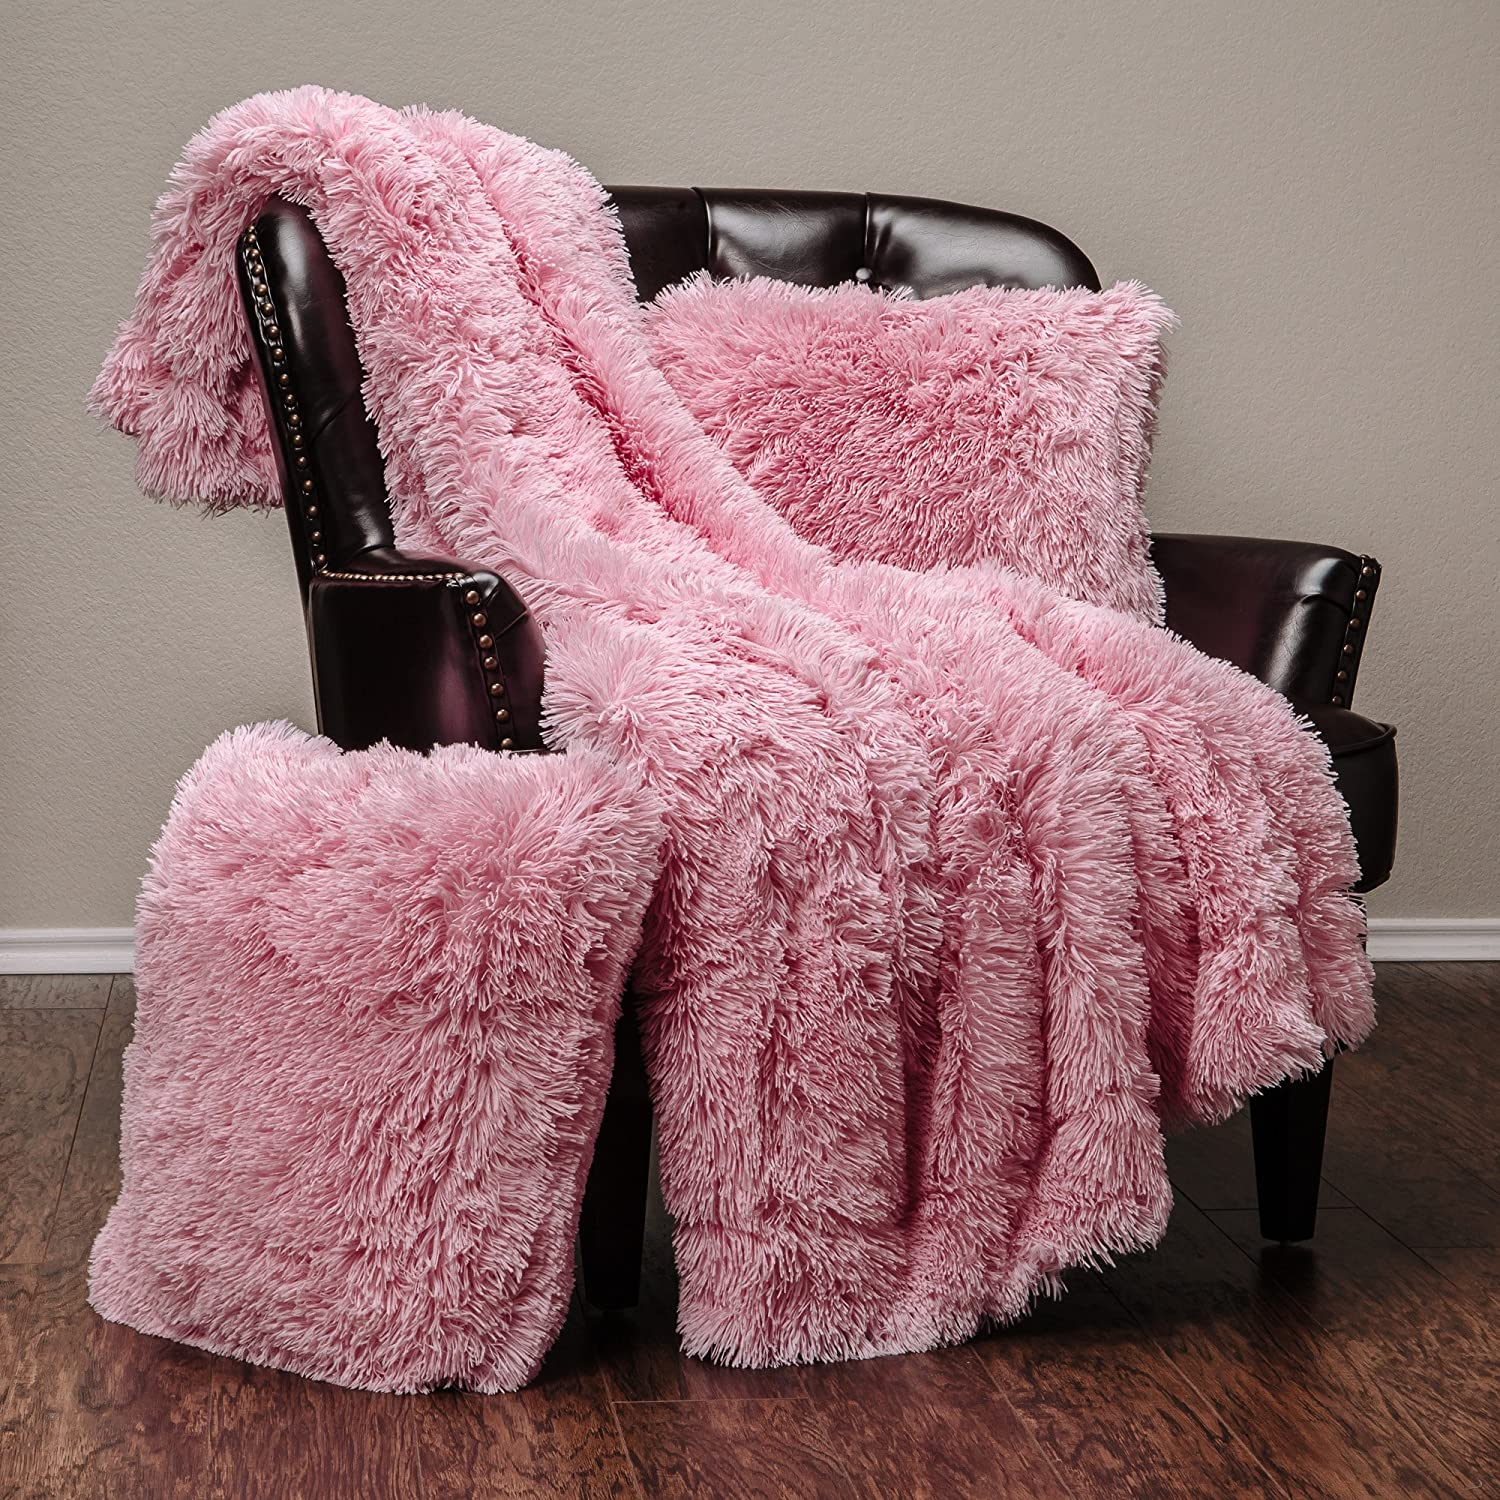 Chanasya Fuzzy Shaggy Max 73% OFF Faux Max 85% OFF Fur Throw Blanket Cover Pillow 3- and